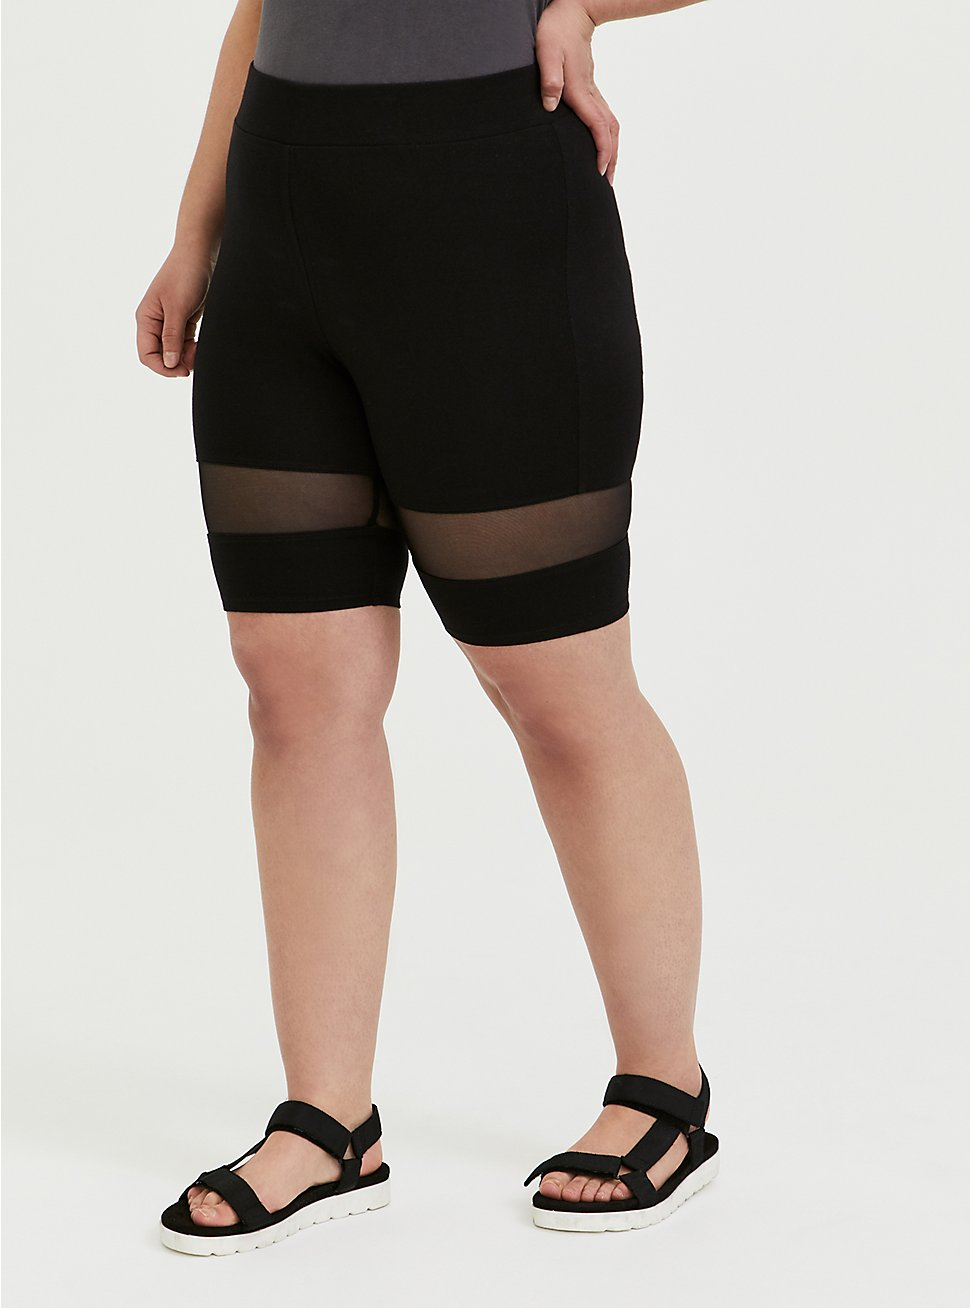 Black Mesh Inset Bike Short, BLACK, hi-res